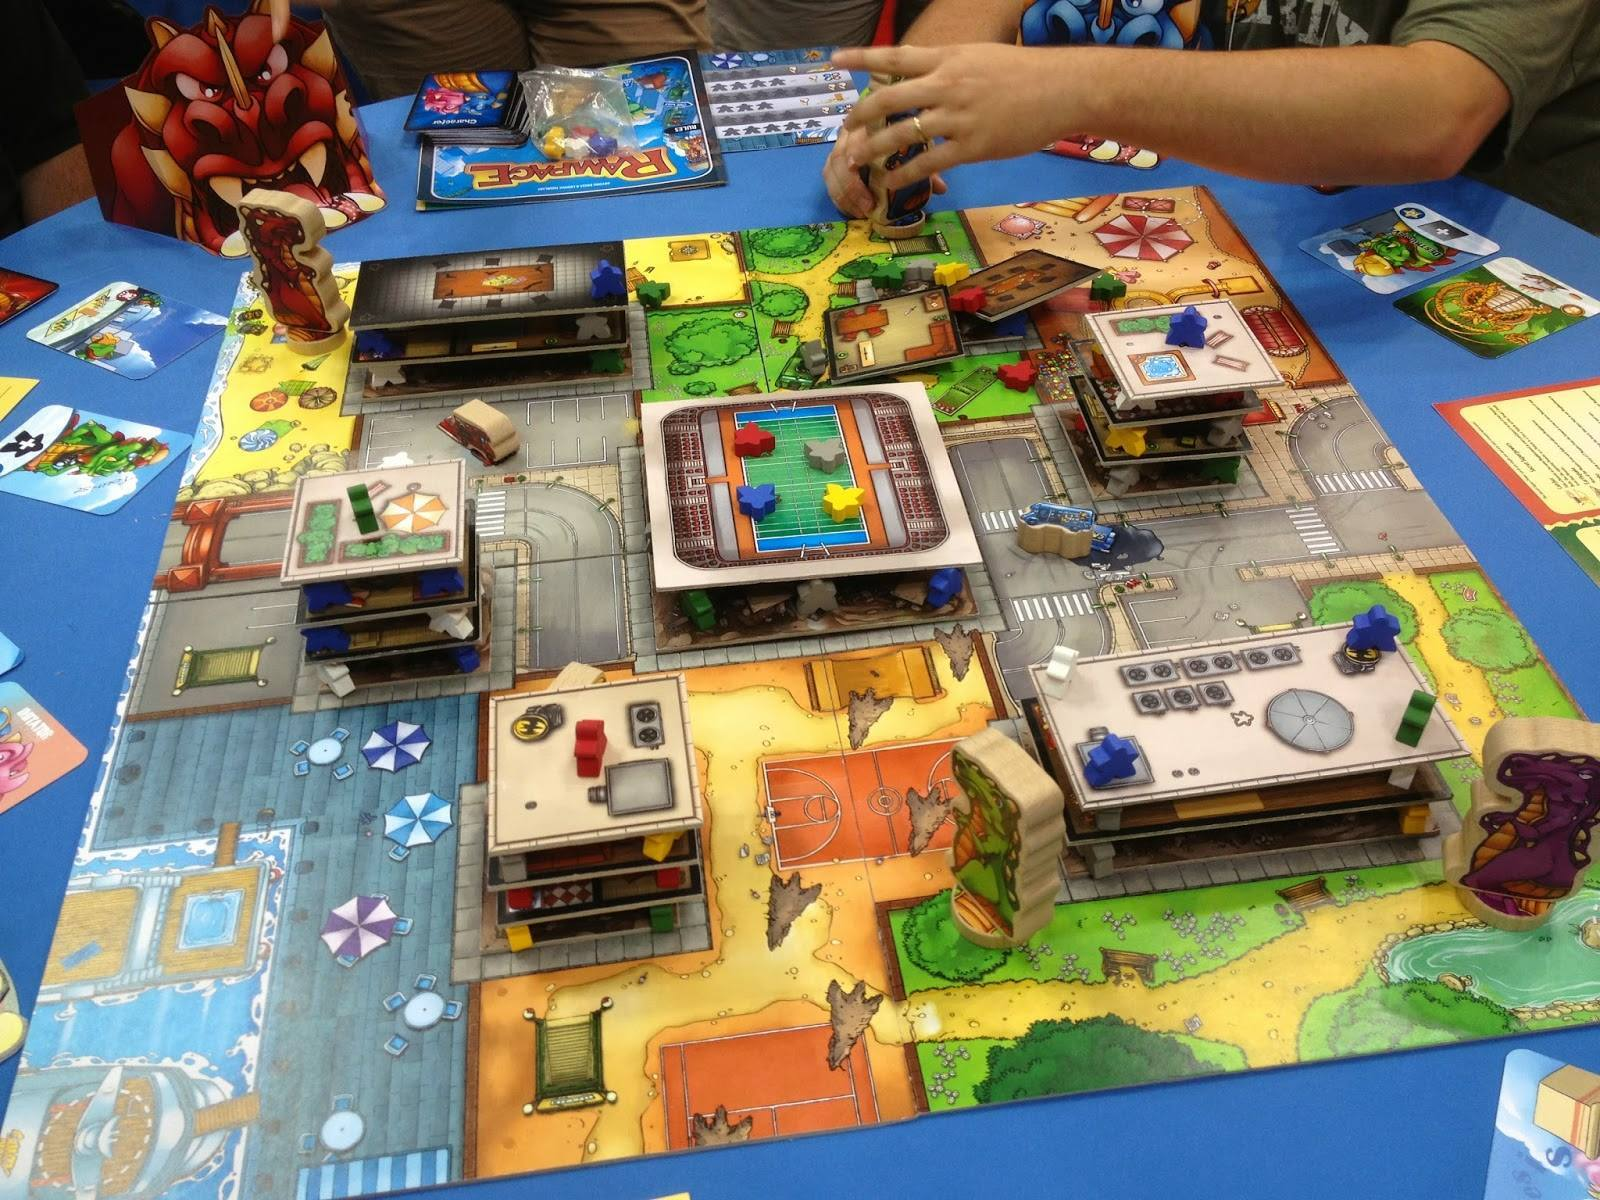 Become a millionaire or solve crime with board games